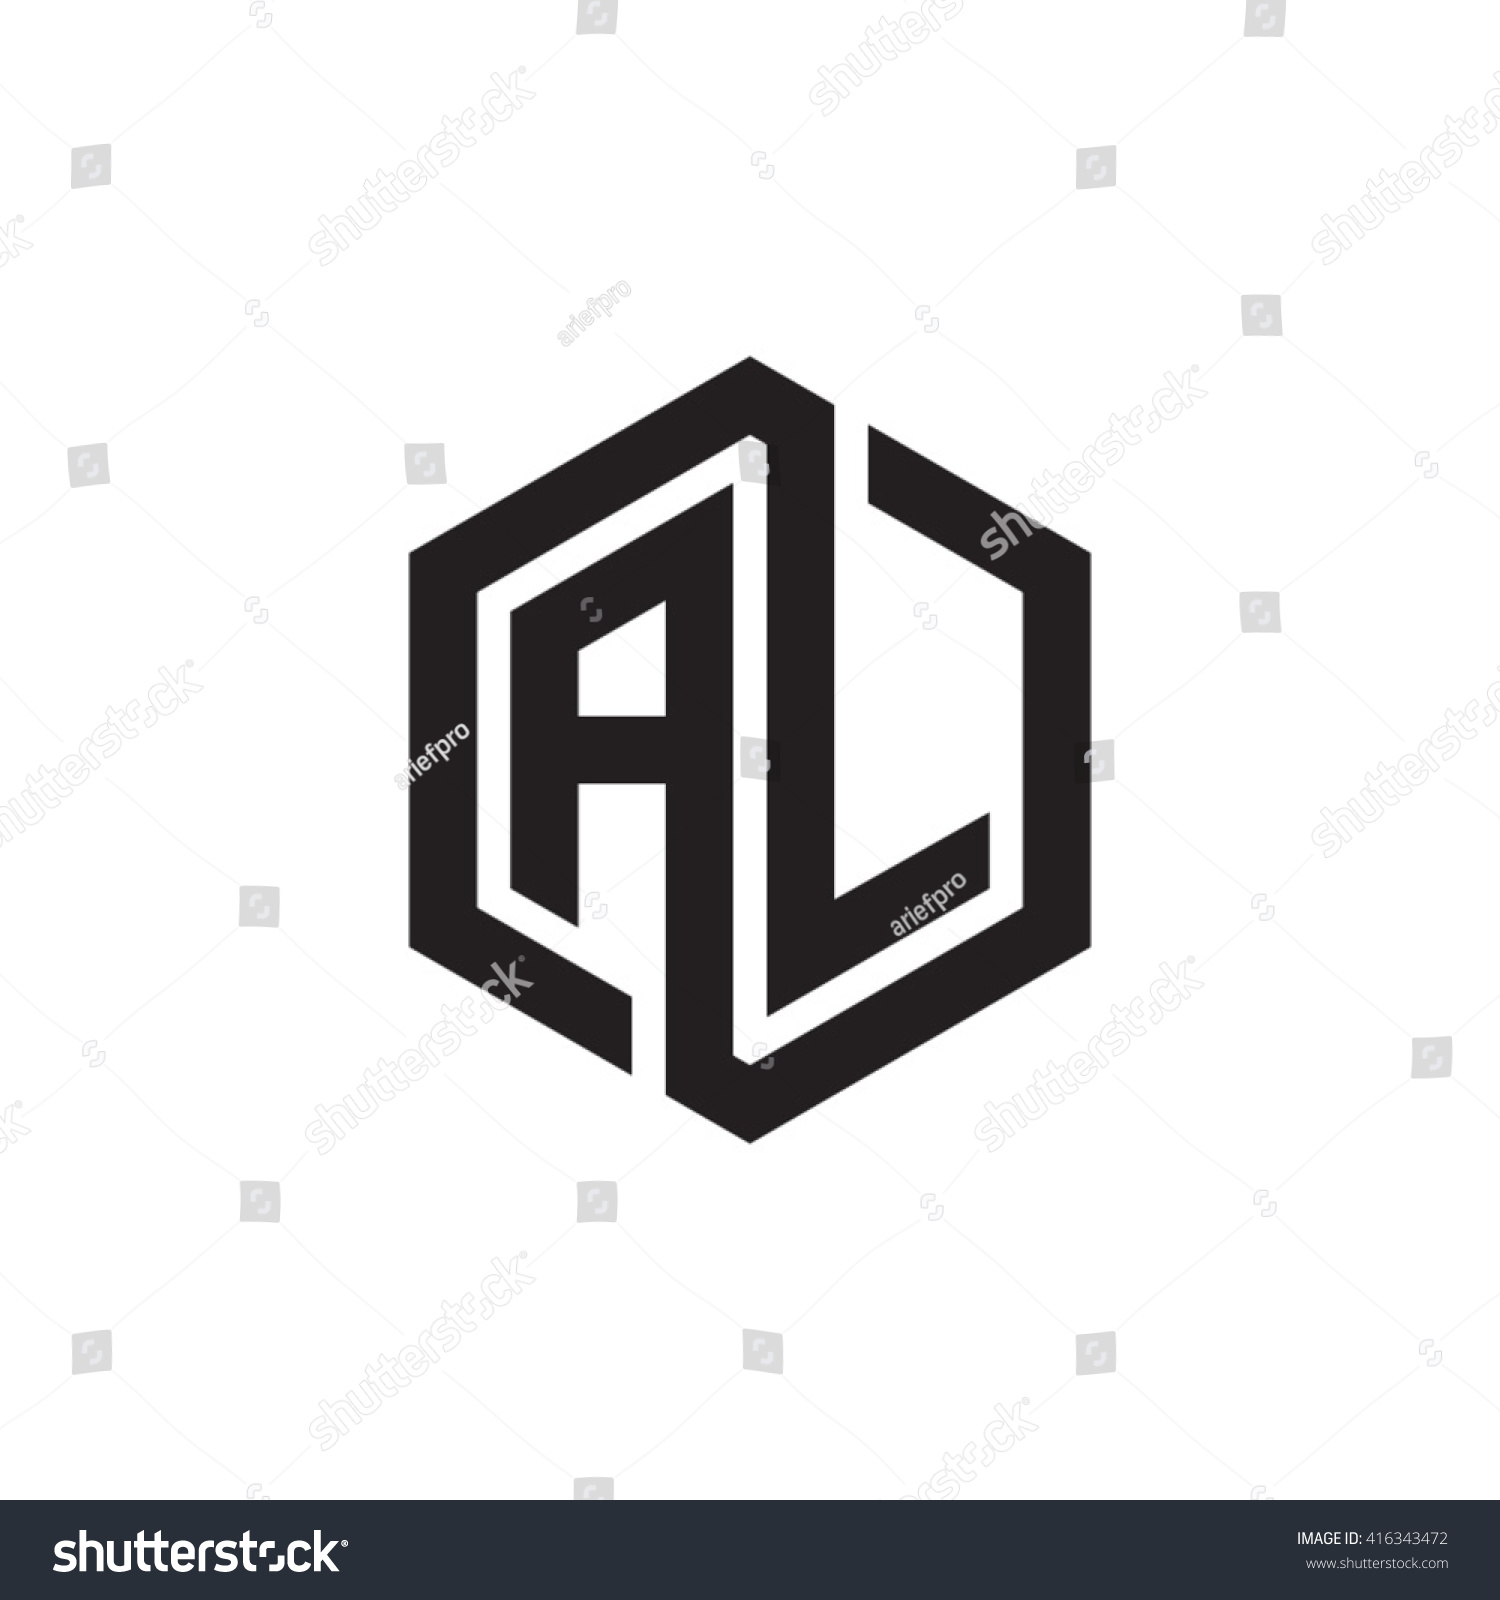 Al Initial Letters Loop Linked Hexagon Stock Vector Royalty Free 416343472